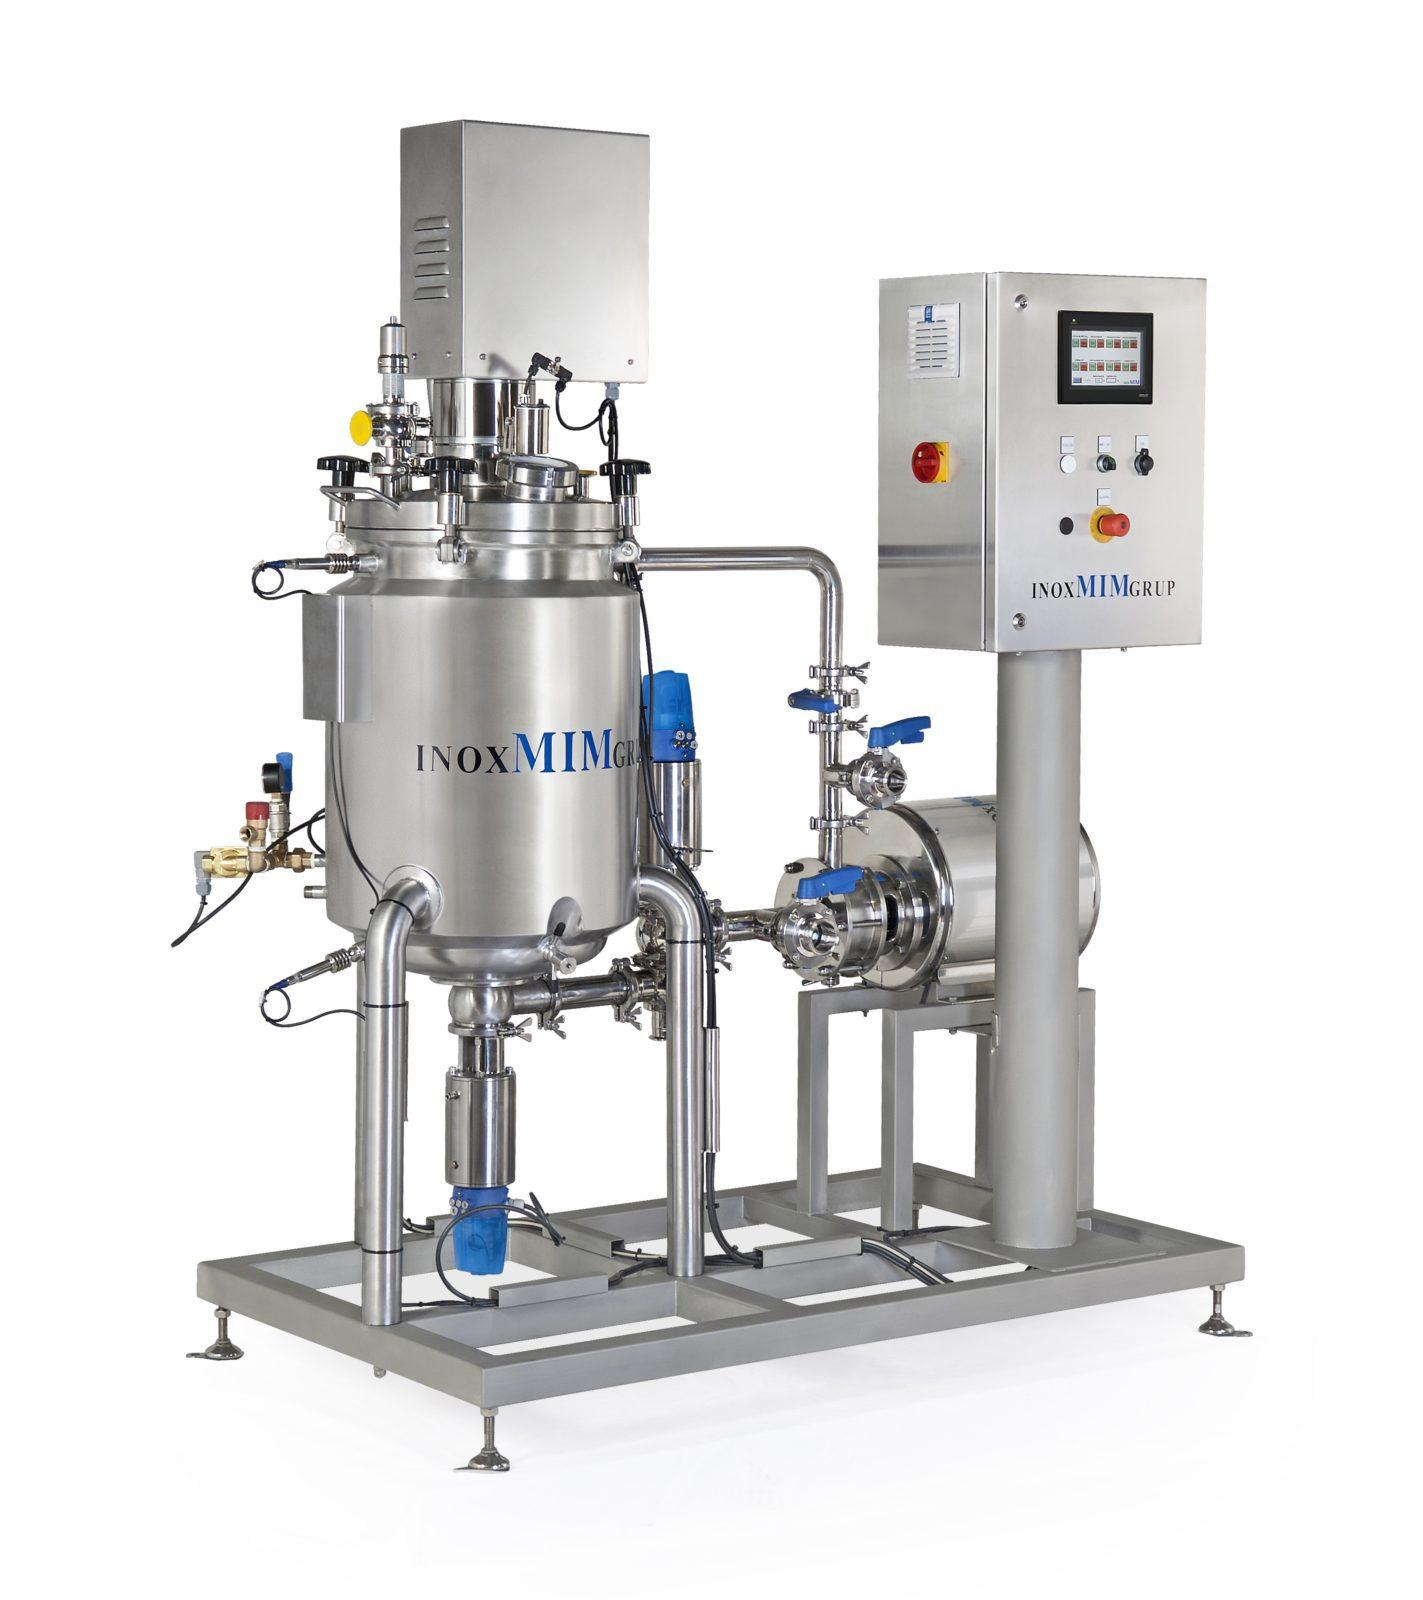 Compact reactor with automatic regulation system